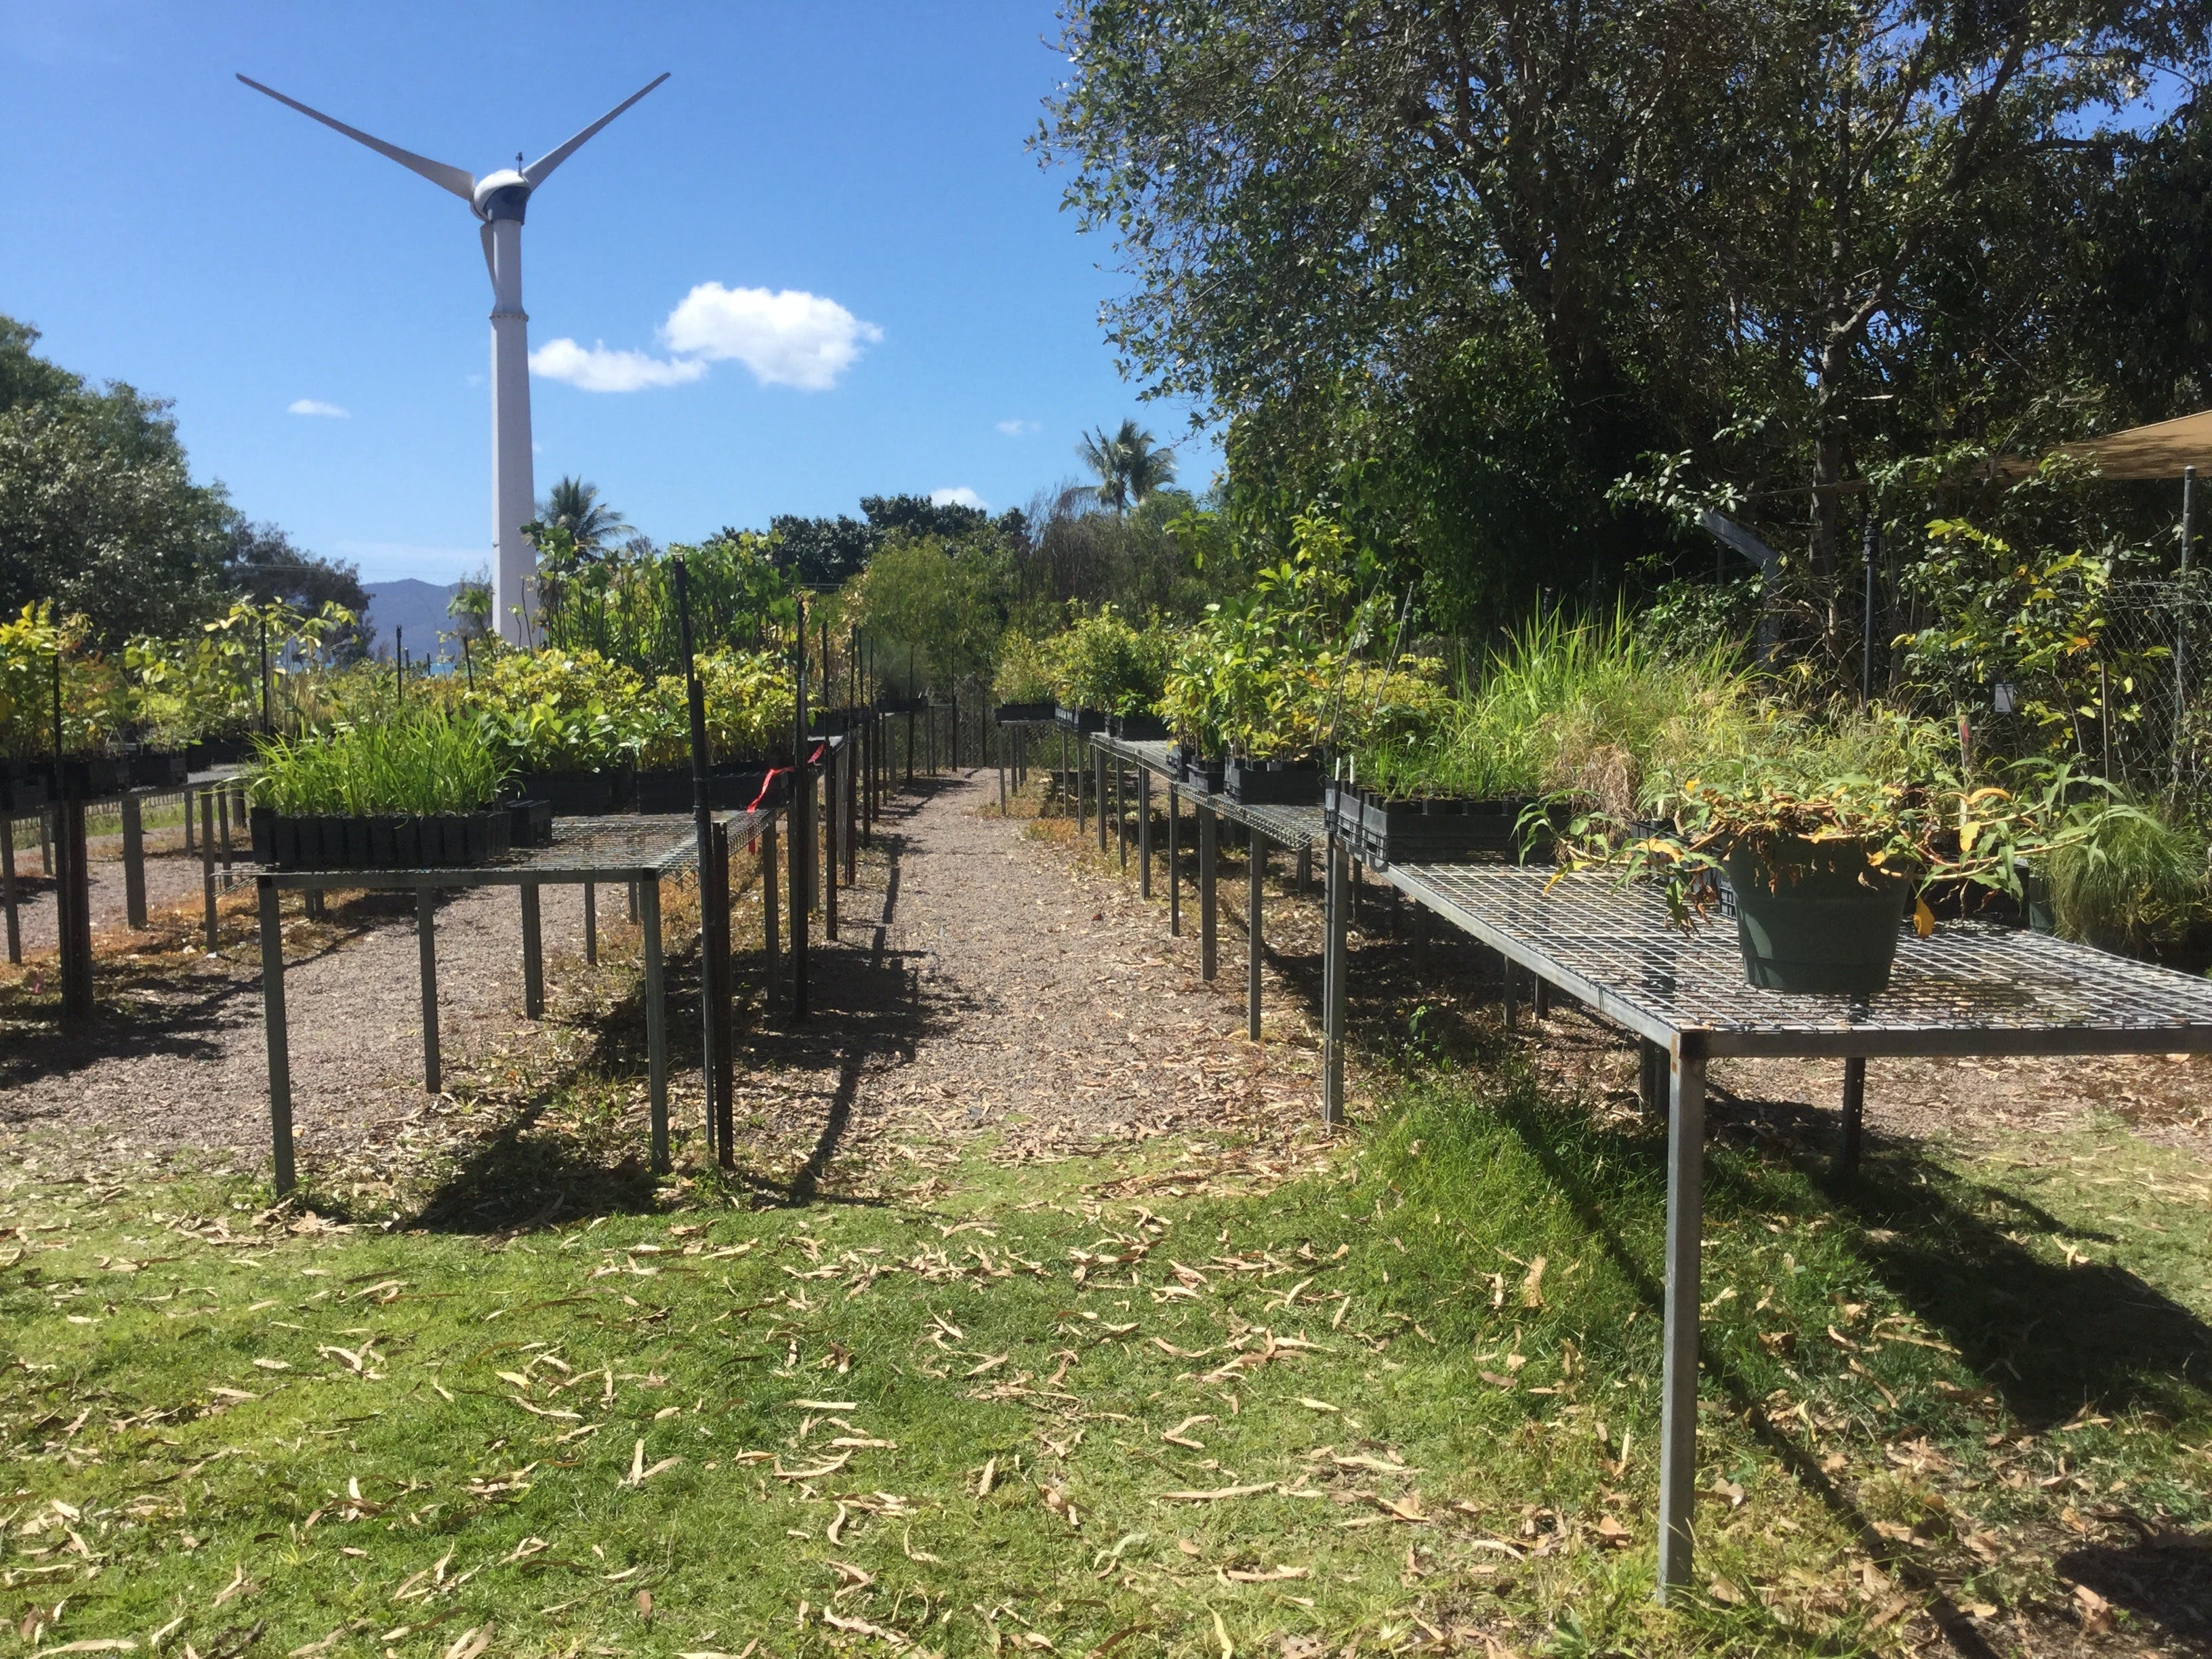 Conservation Volunteers Australia Townsville - Ocean View Nursery - Accommodation Cairns